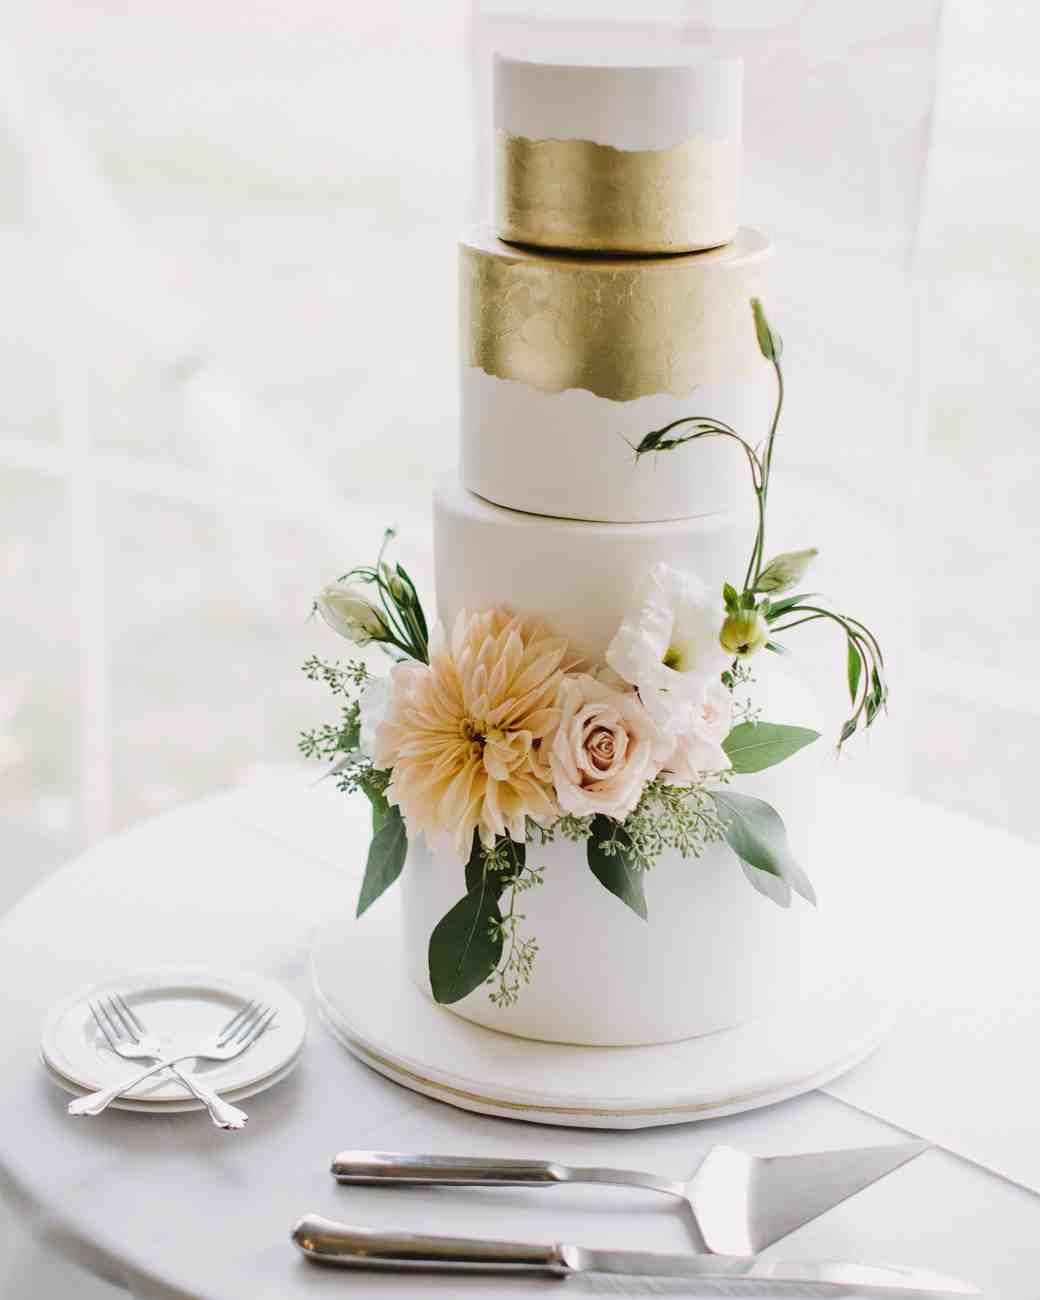 Four Tiered Gold and White Wedding Cake with Floral Cake Toppers